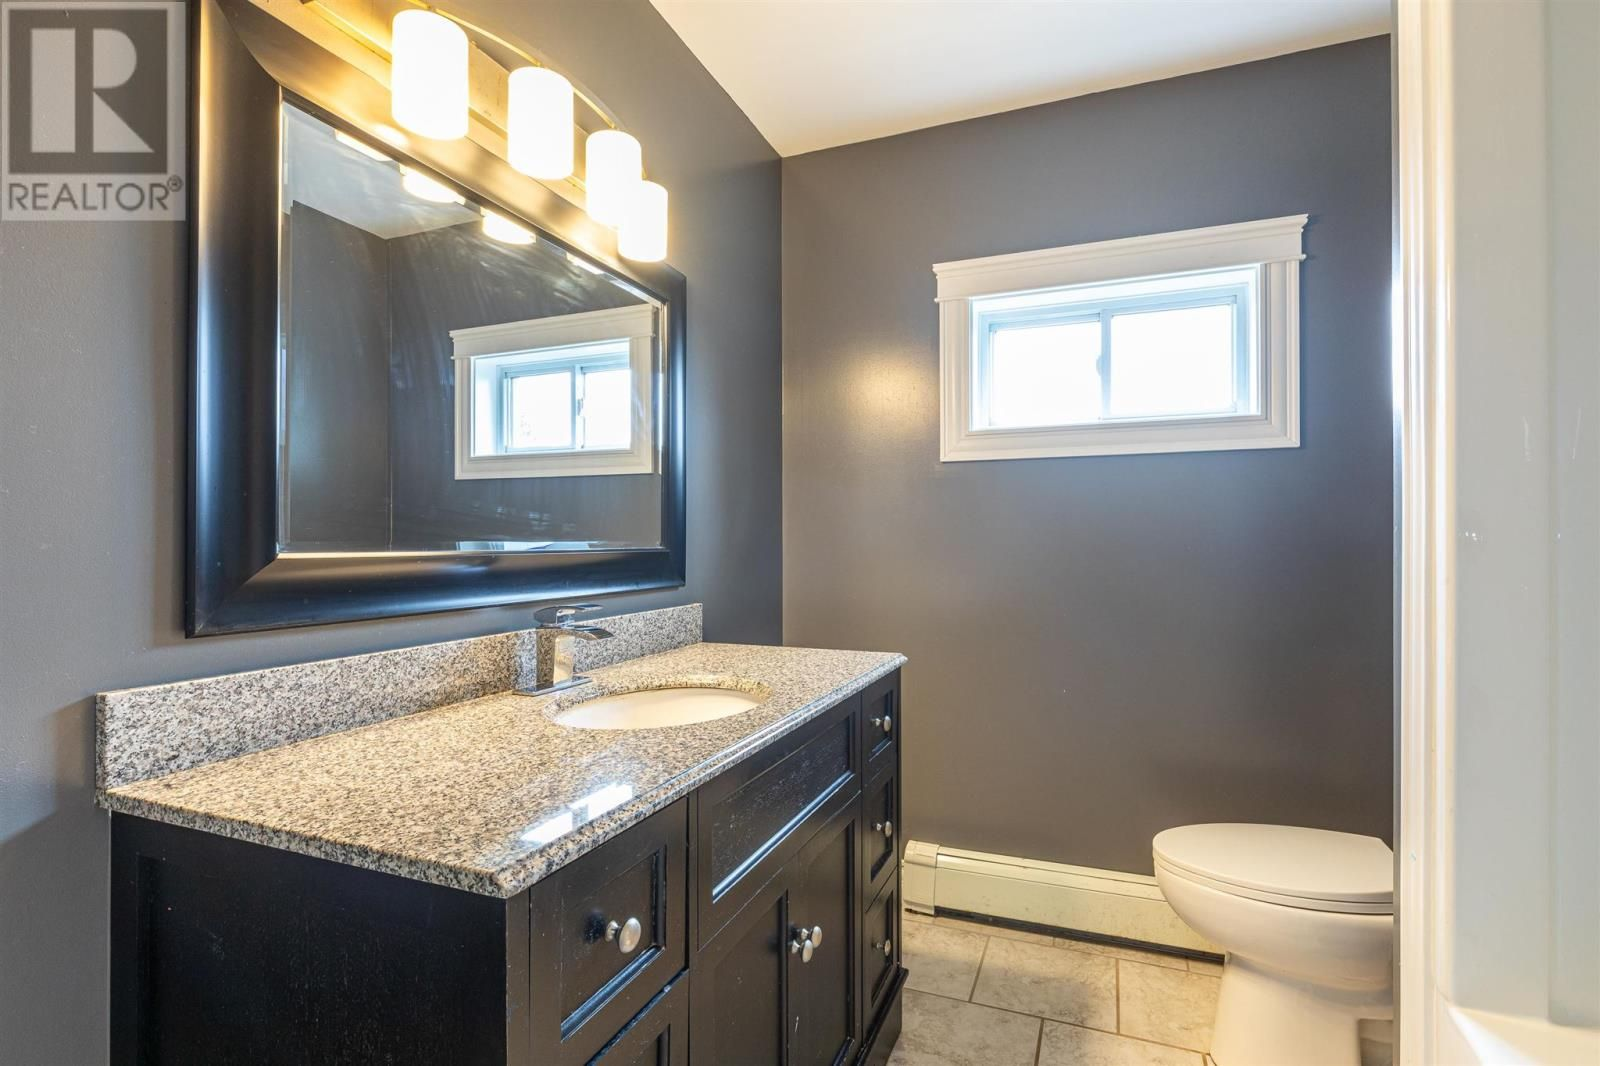 Photo 25: Photos: 5 Cherry Lane in Stratford: House for sale : MLS®# 202119303